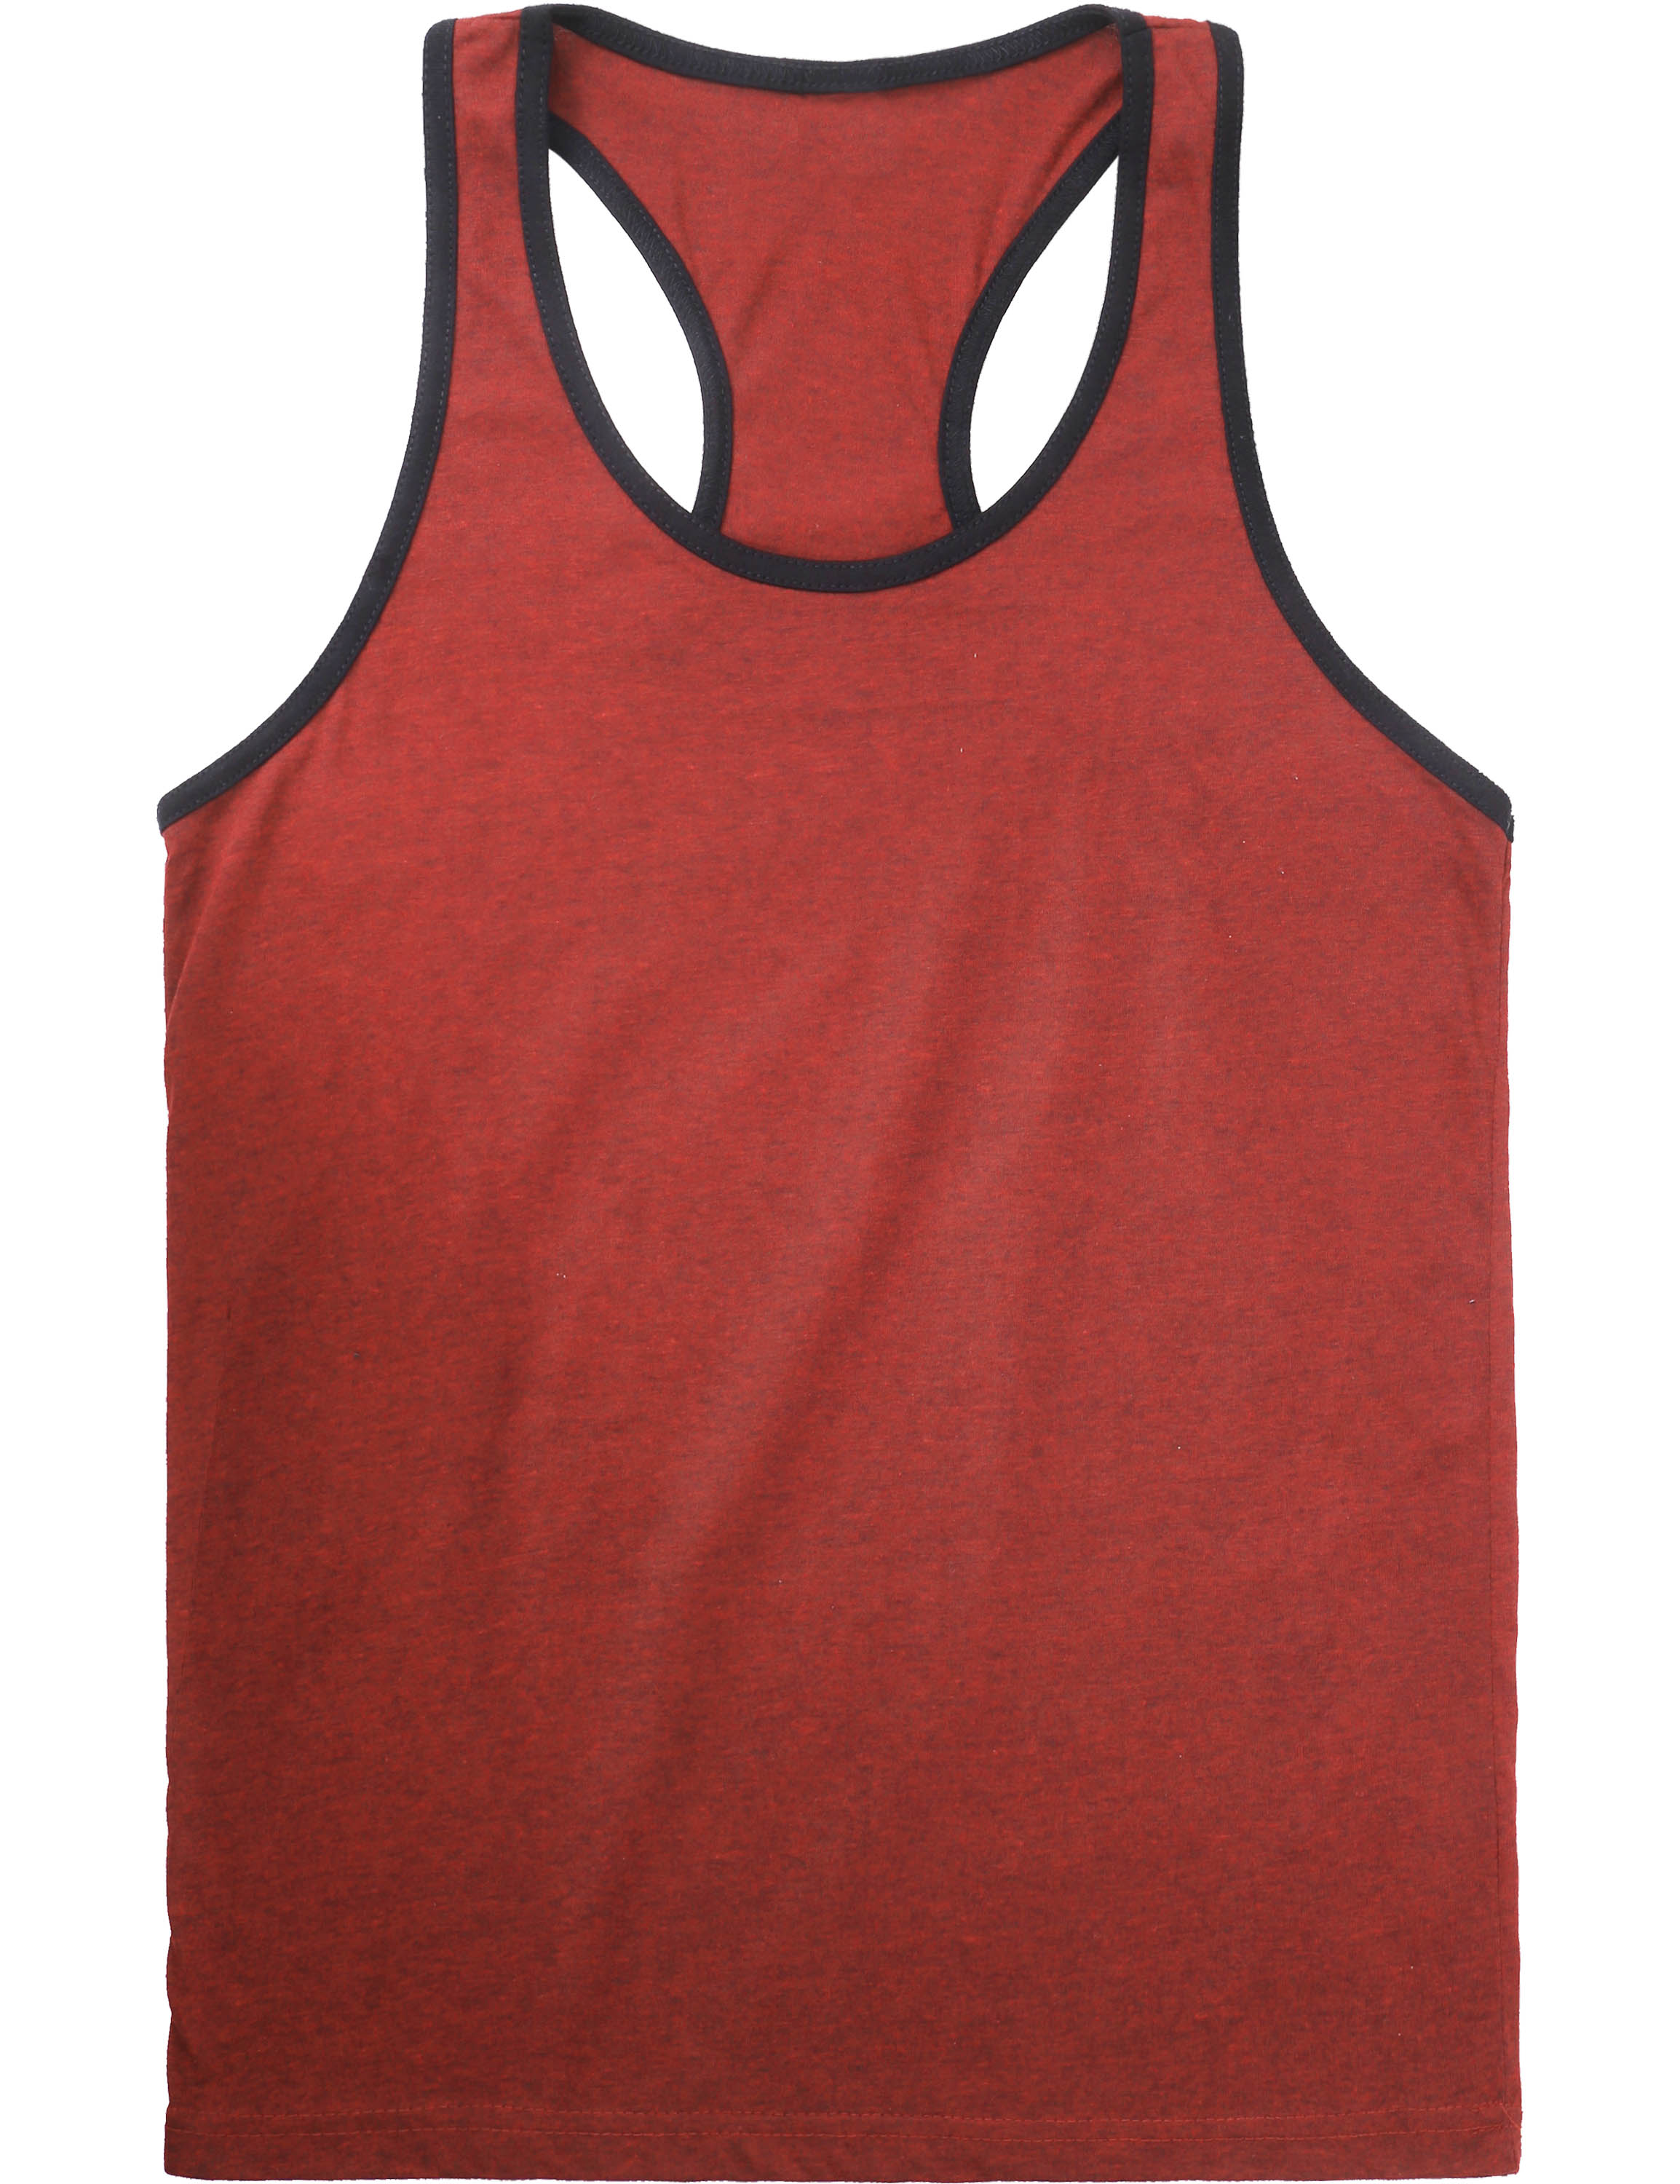 7e355ba44789a MA Mens Undershirt Racer Back Tank Top With Contrast Binding 1MAB0012 -  Walmart.com